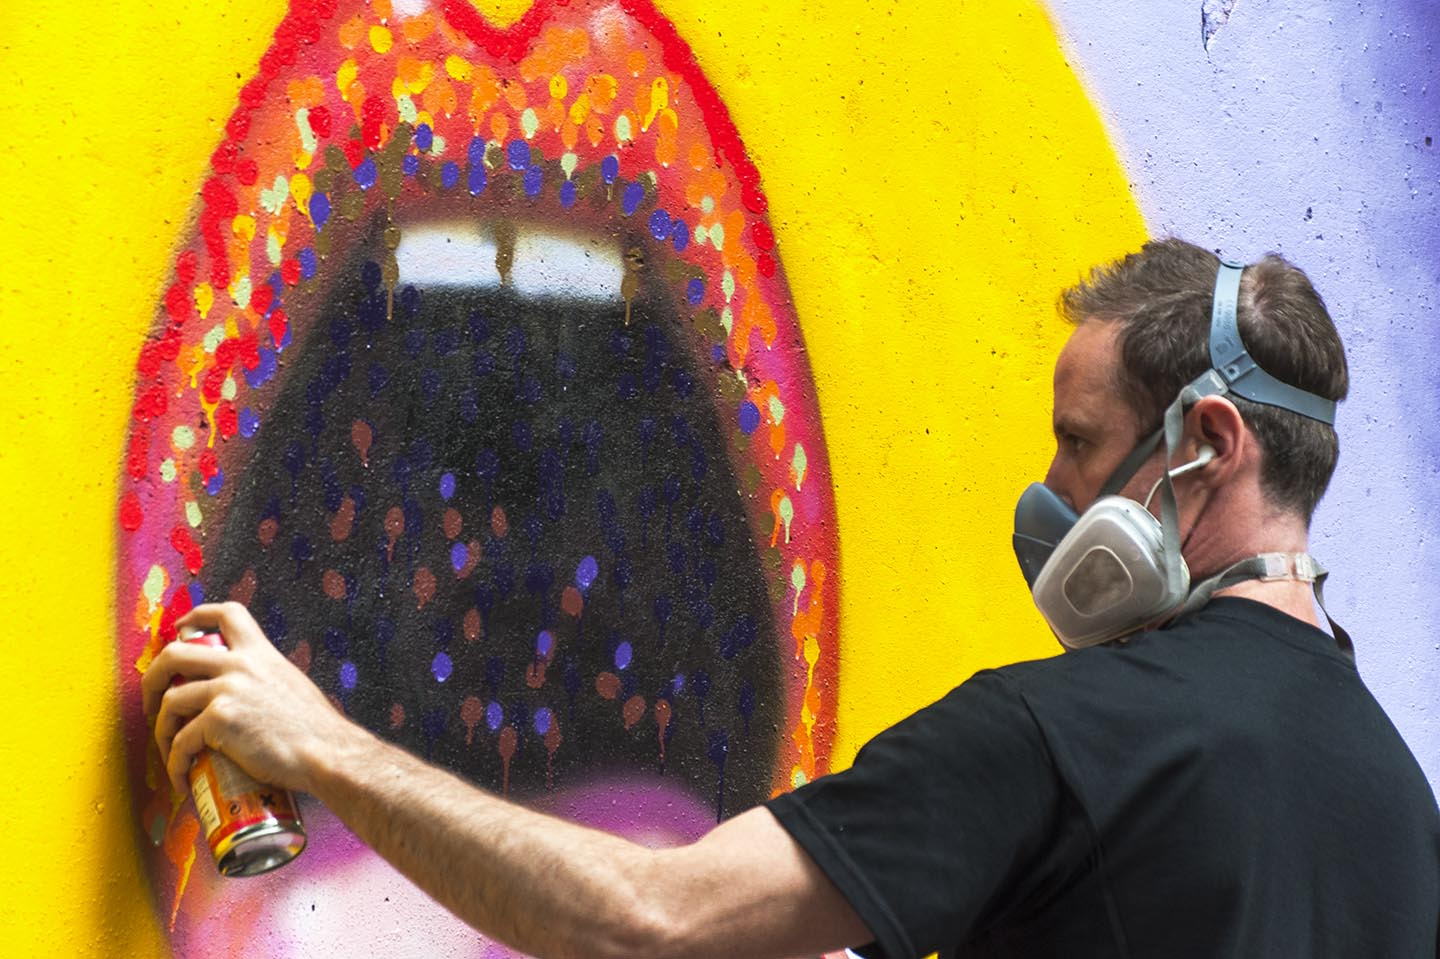 Close Up of Jimmy and the Painting of a tongue by Street Artist Jimmy C. aka. James Cochran in Berlin